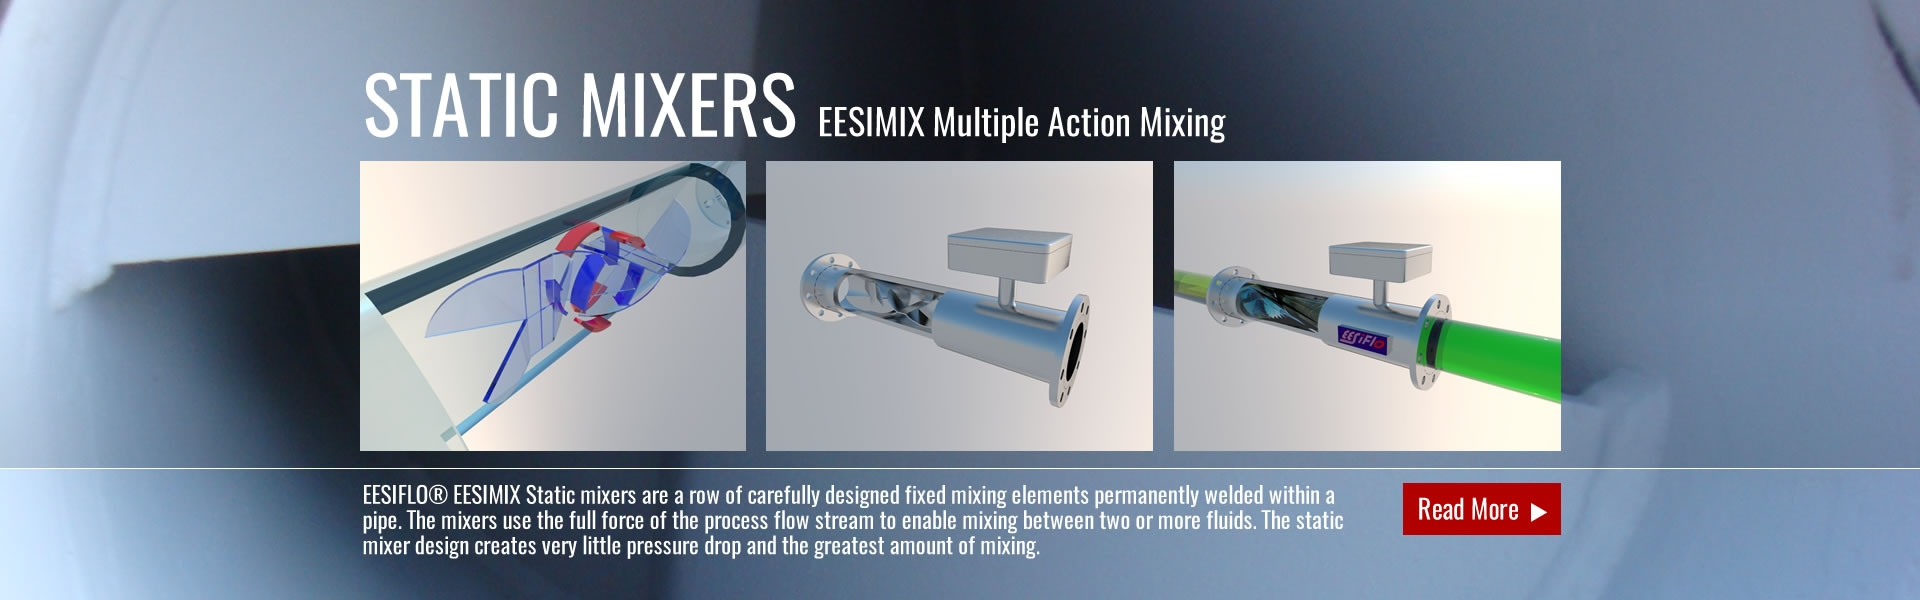 STATIC MIXER EESIMIX Multiple Action Mixing